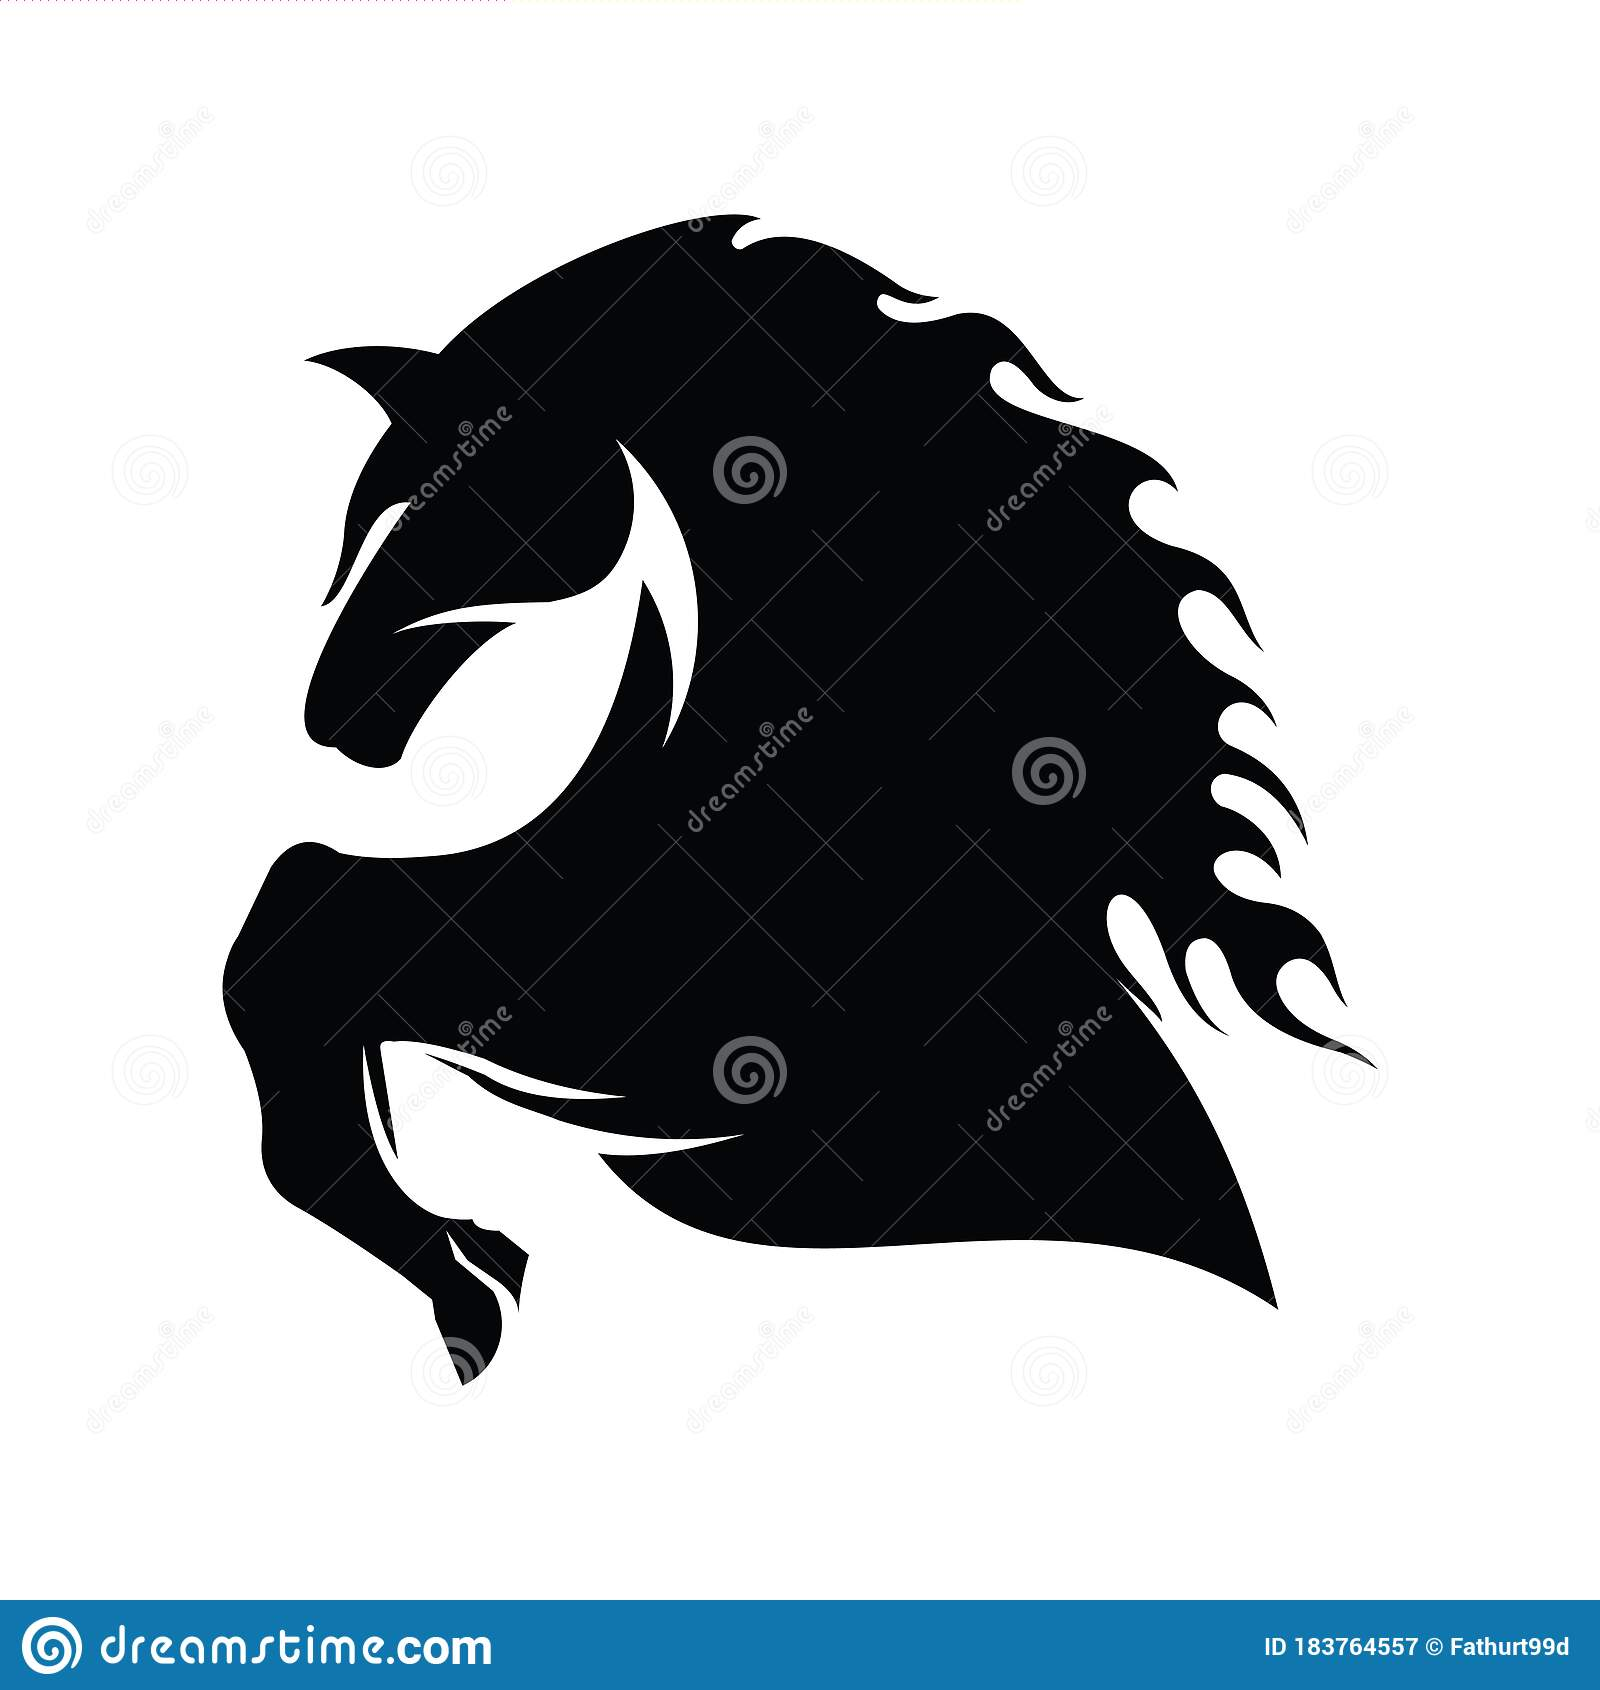 Black Horse Logo Design Stock Vector Illustration Of Icon 183764557